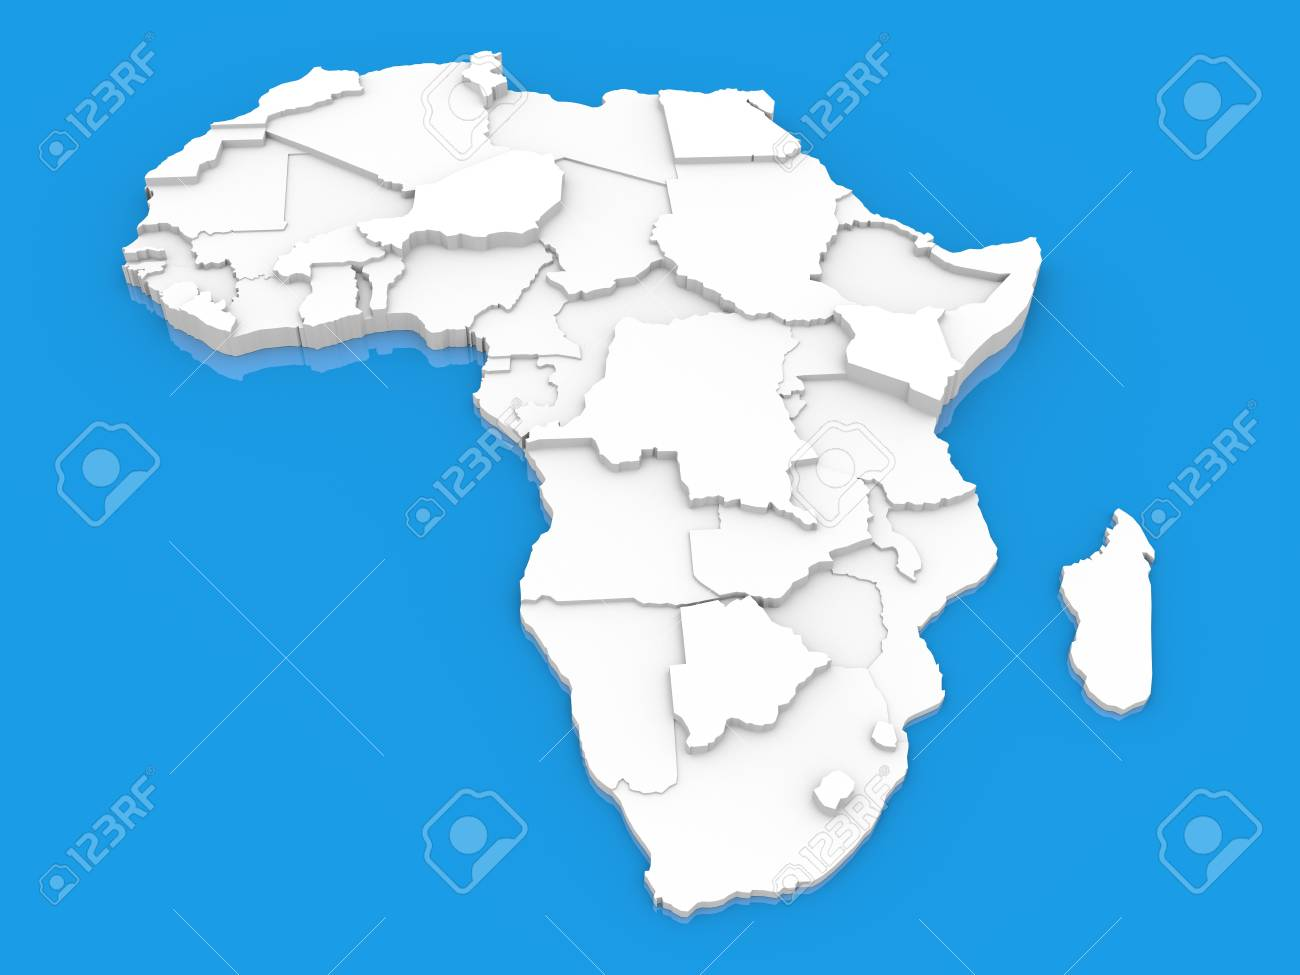 Map of Africa Stock Photo - 15311932